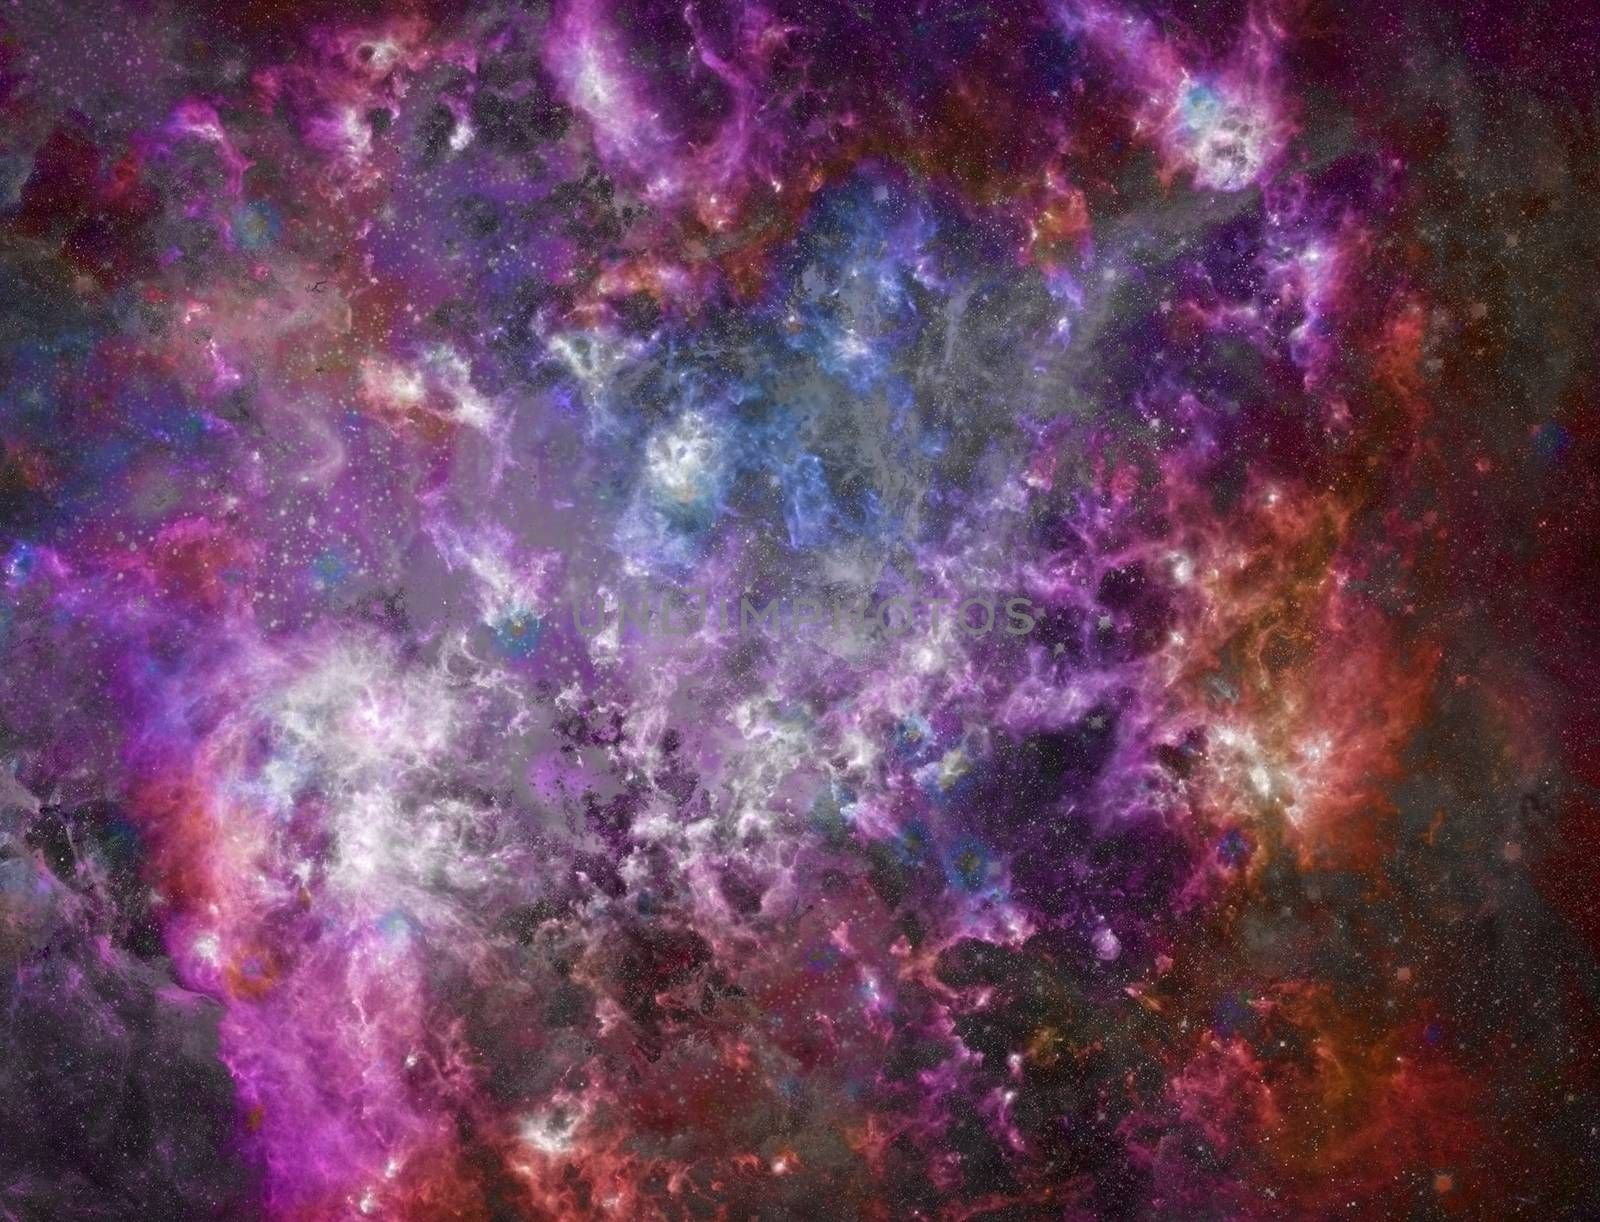 Big Babies in the Rosette Nebula. Colorful space